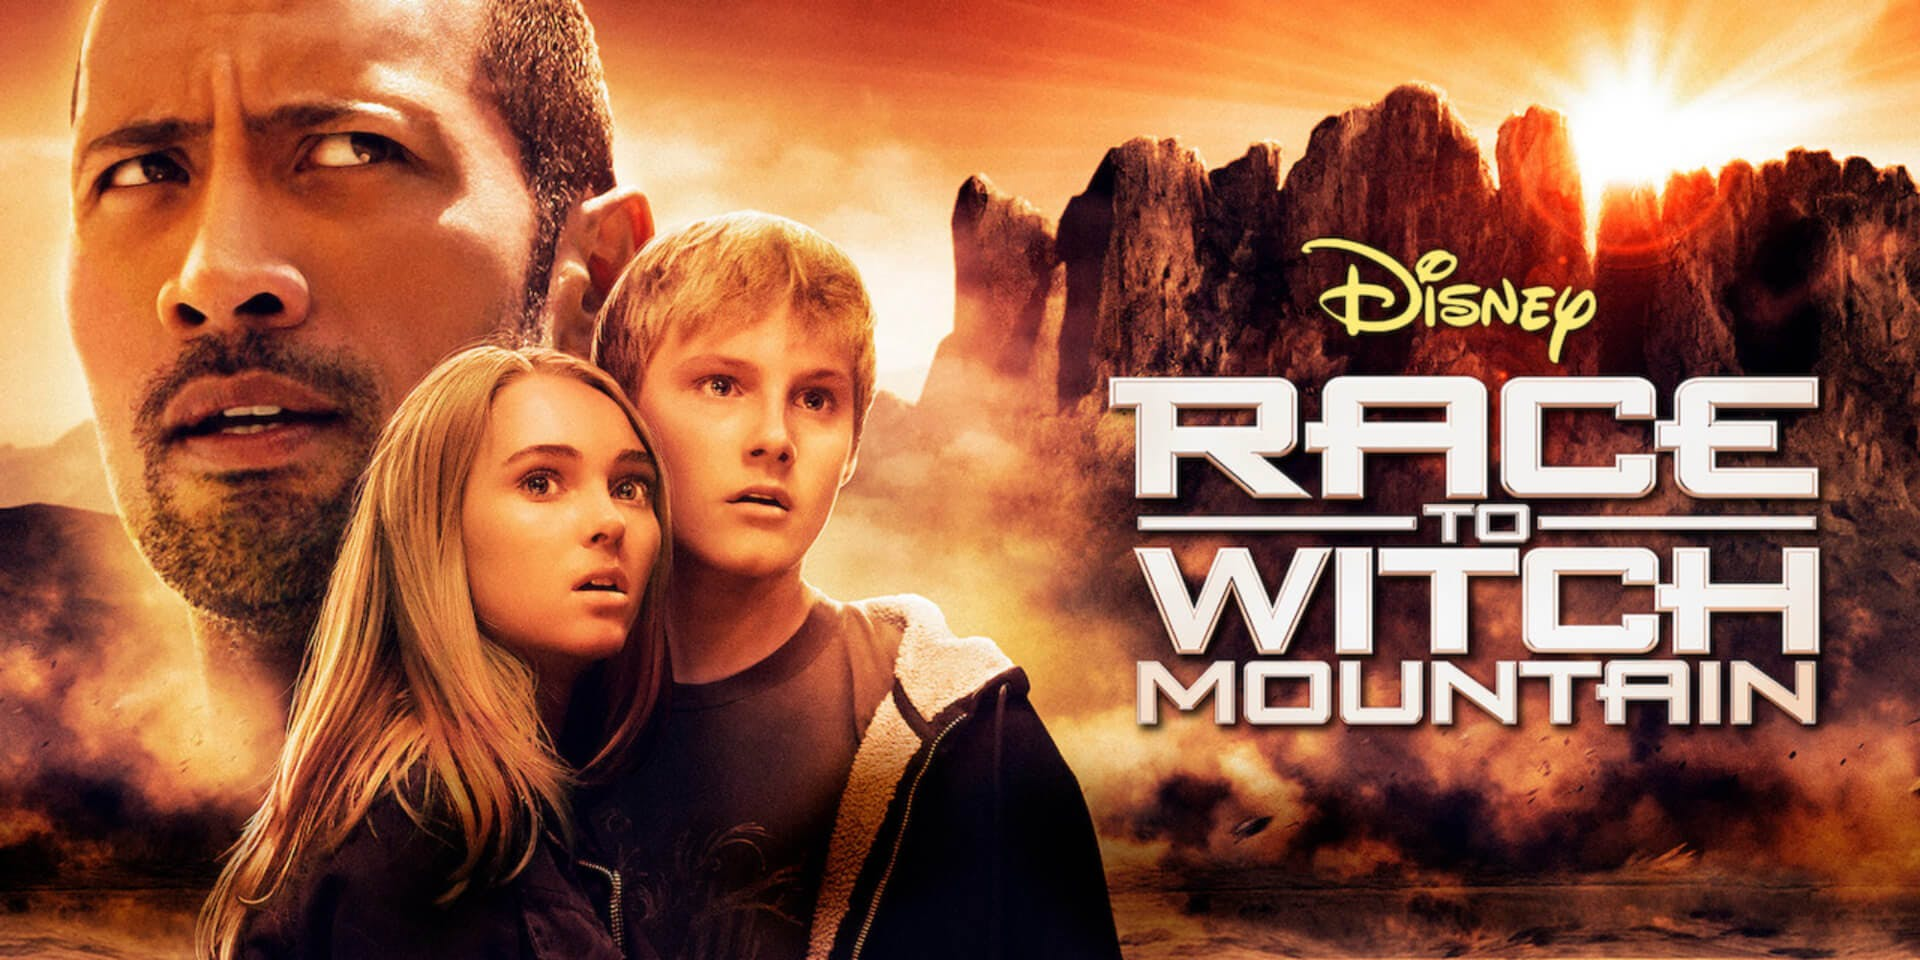 dwayne the rock johnson movies netflix race to witch mountain